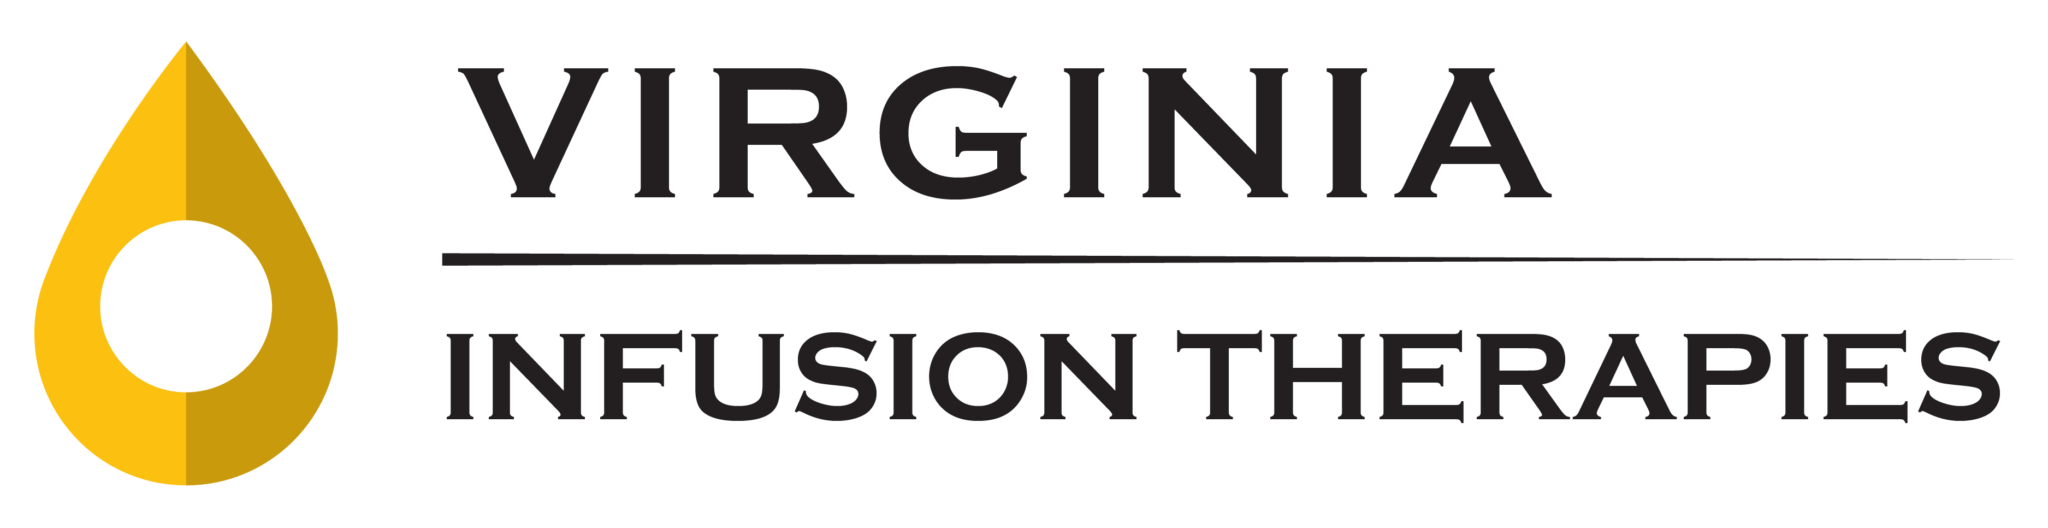 Virginia-Infusion-Therapy Logo